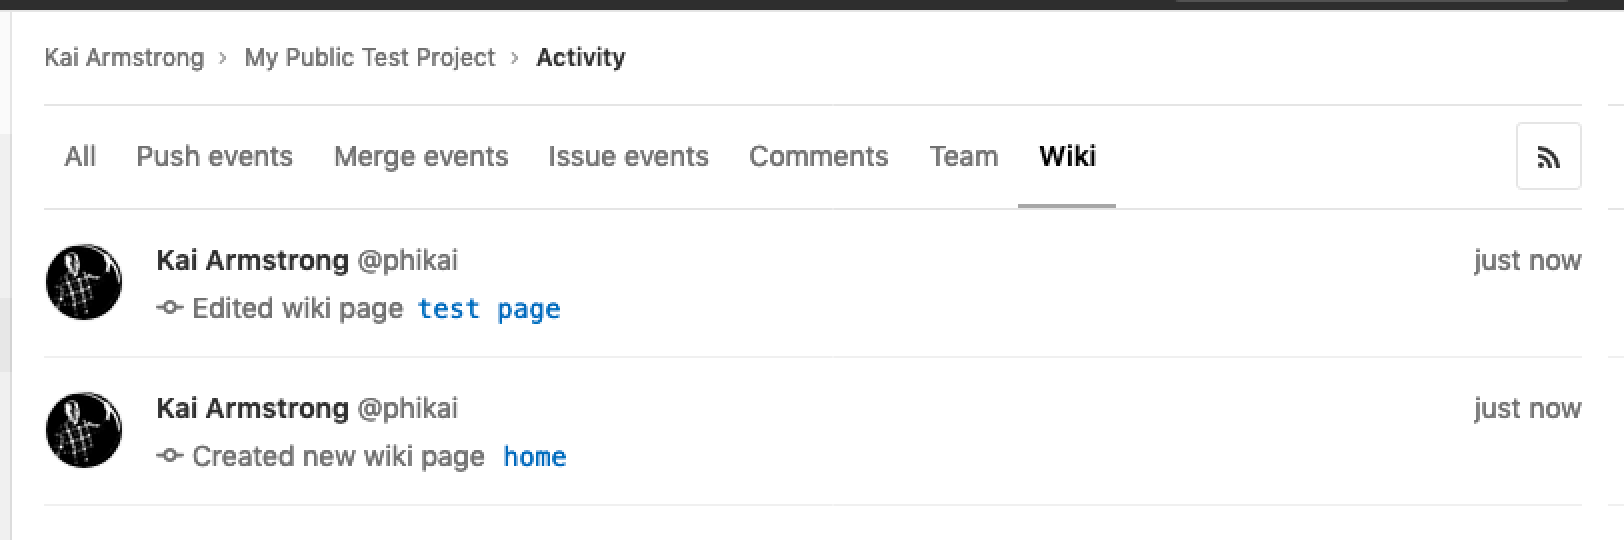 Tracking Wiki activity